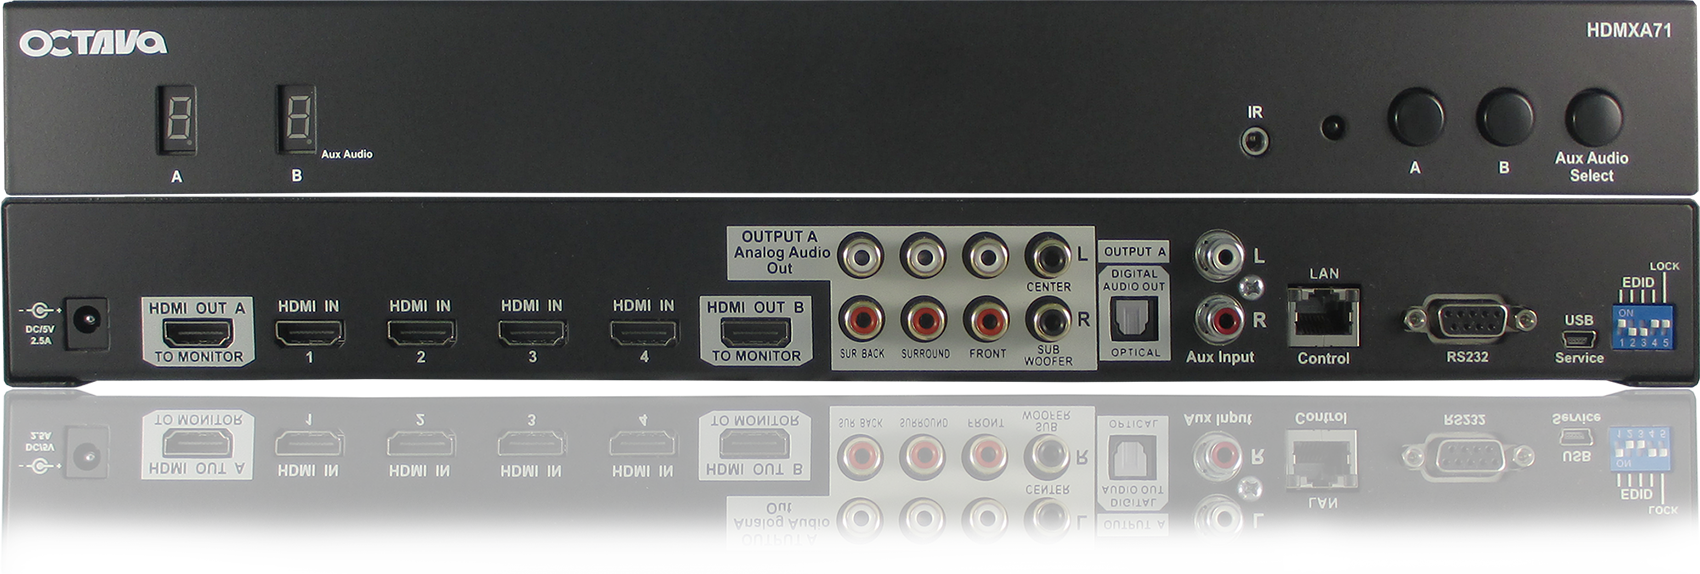 4 In 2 Out HDMI Video Matrix Switch-hdmxa71-back-view